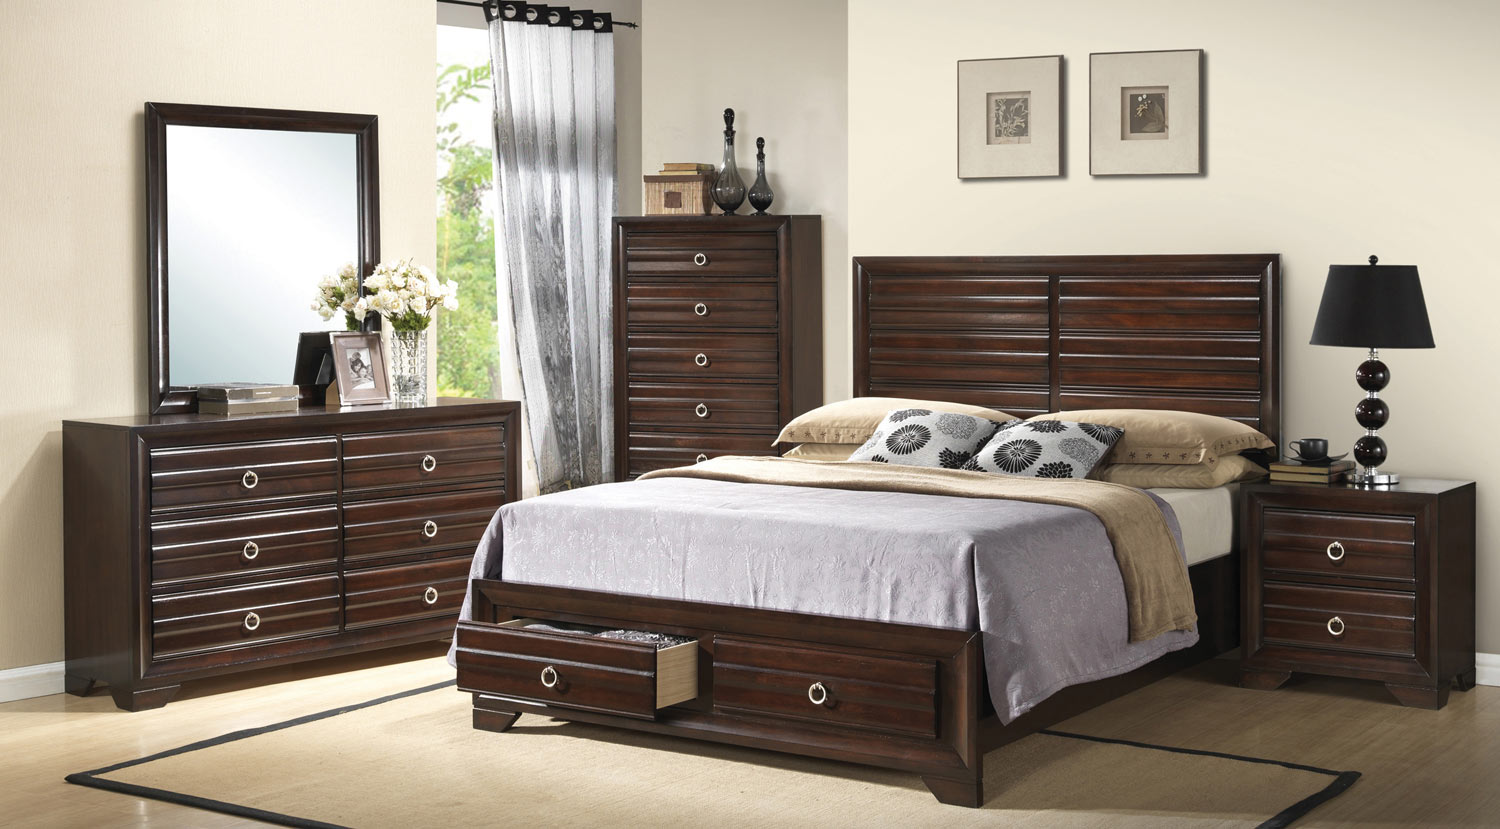 coaster bedroom sets coaster bryce bedroom set cappuccino 203471 bed set at 11149